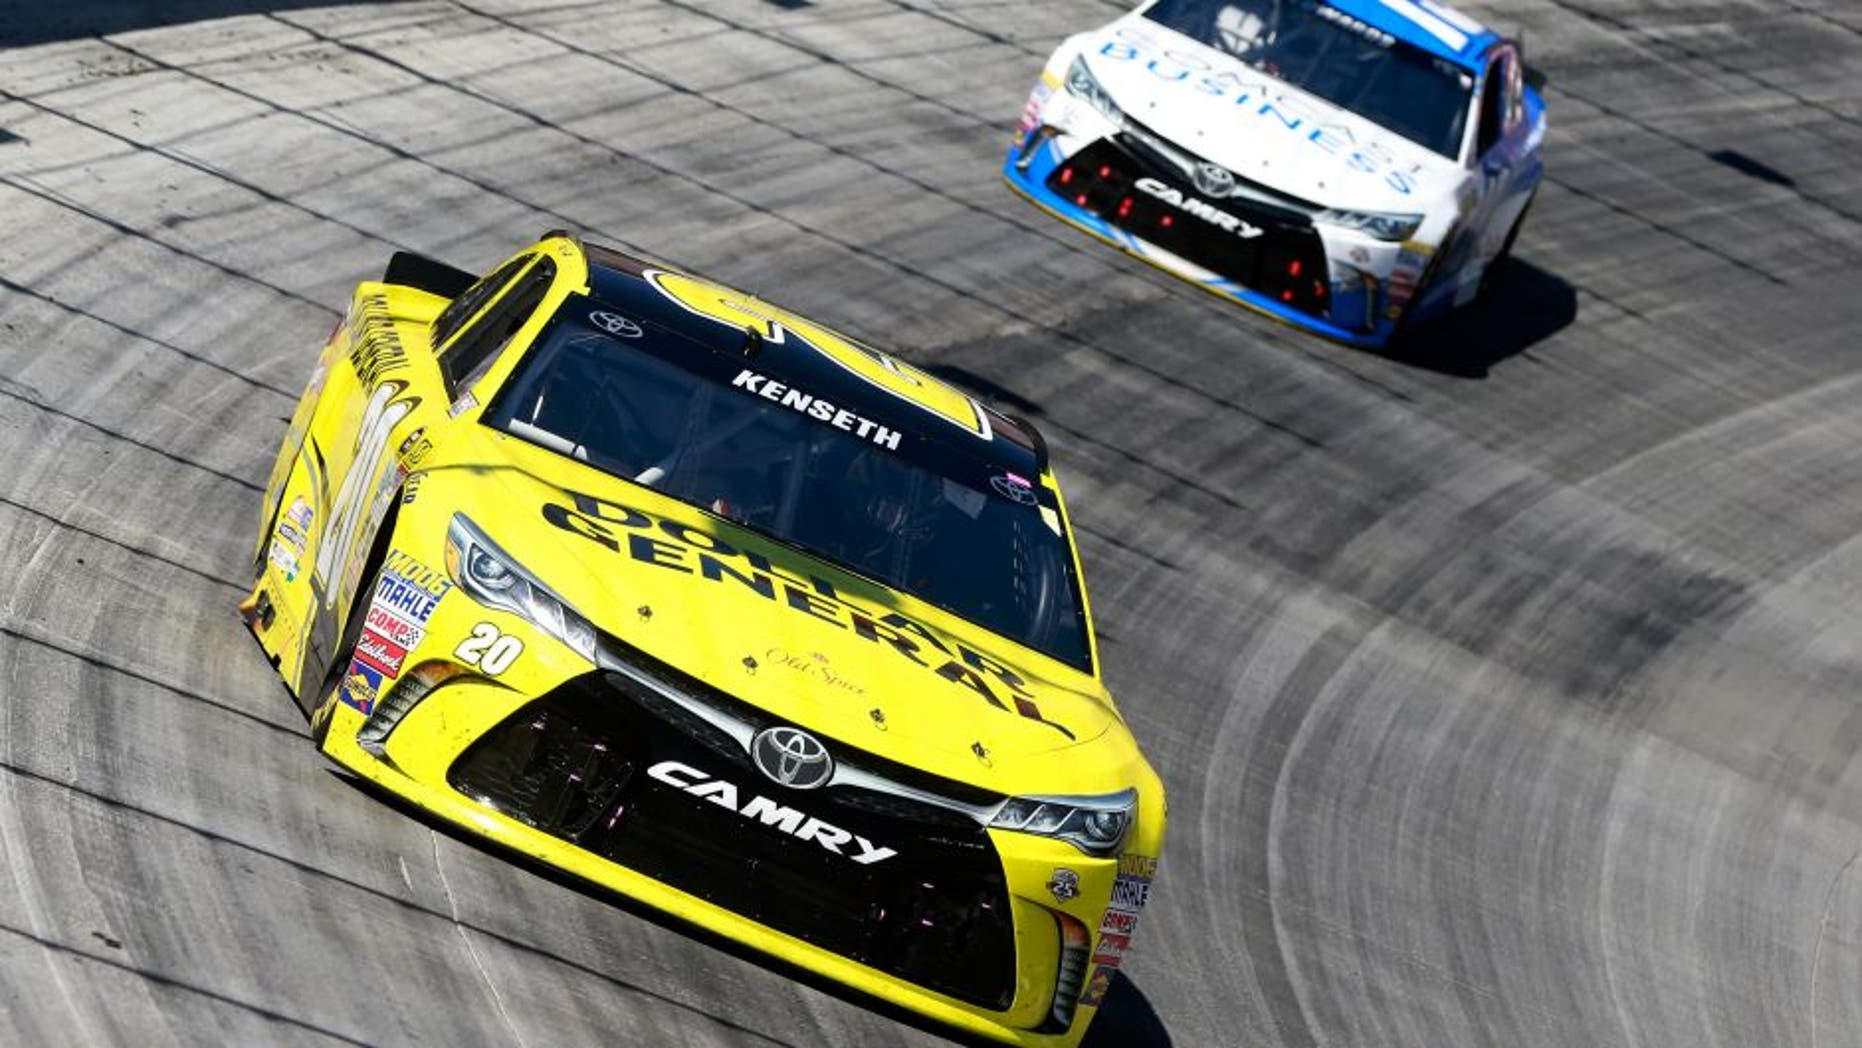 BRISTOL, TN - APRIL 17: Matt Kenseth, driver of the #20 Dollar General Toyota, leads Carl Edwards, driver of the #19 Comcast Business Toyota, during the NASCAR Sprint Cup Series Food City 500 at Bristol Motor Speedway on April 17, 2016 in Bristol, Tennessee. (Photo by Matt Sullivan/Getty Images)